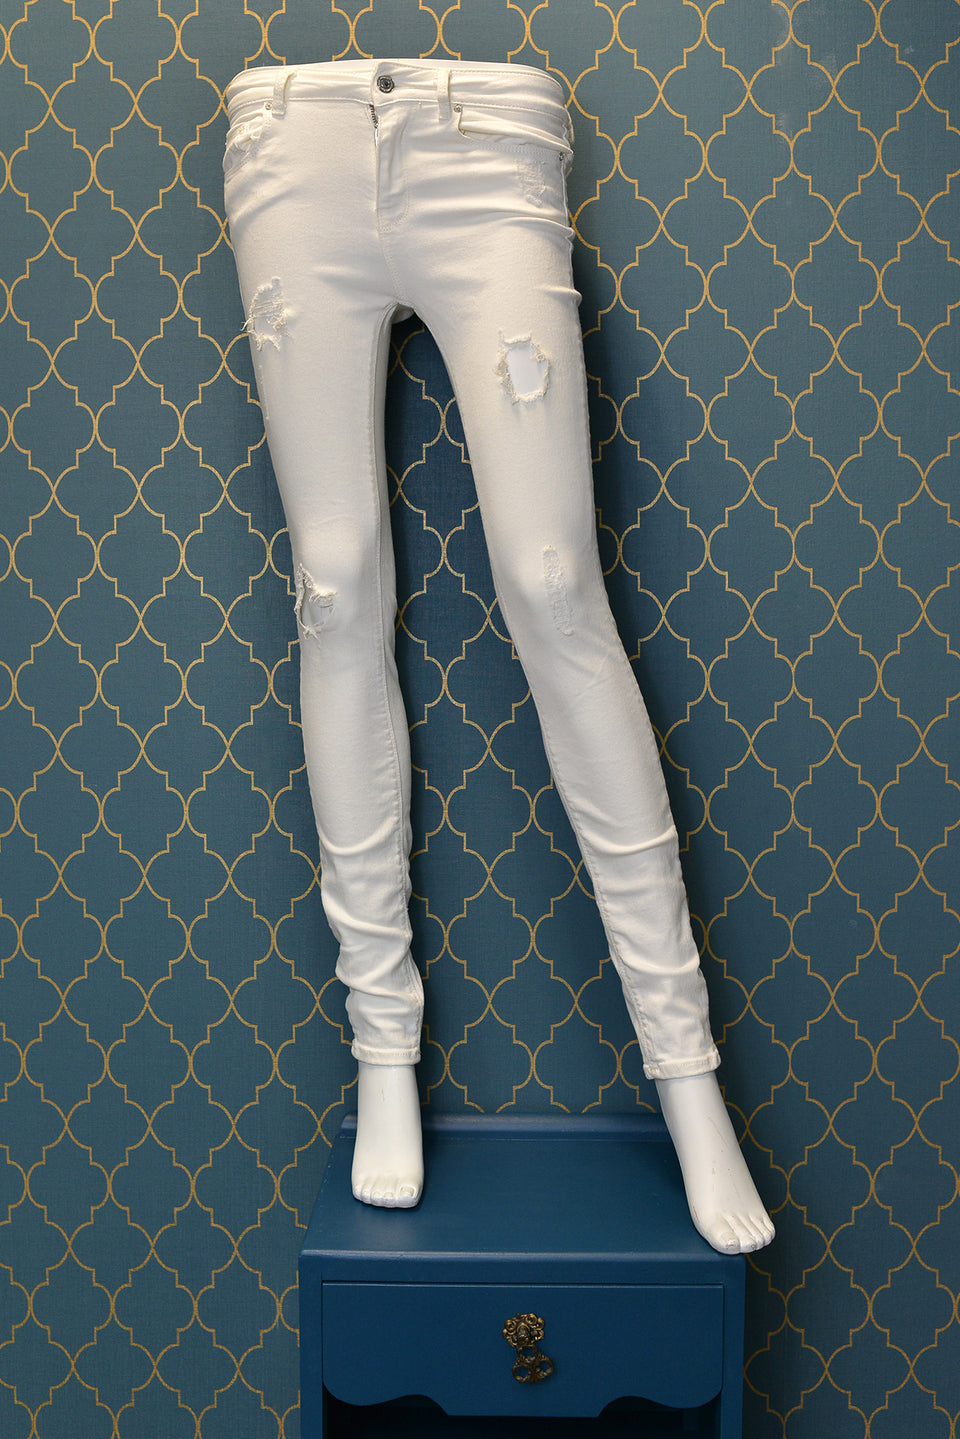 ZARA Women's White Ripped Slim Fit Medium Rise Jeans Jeggings. Size XS (34). Like new.